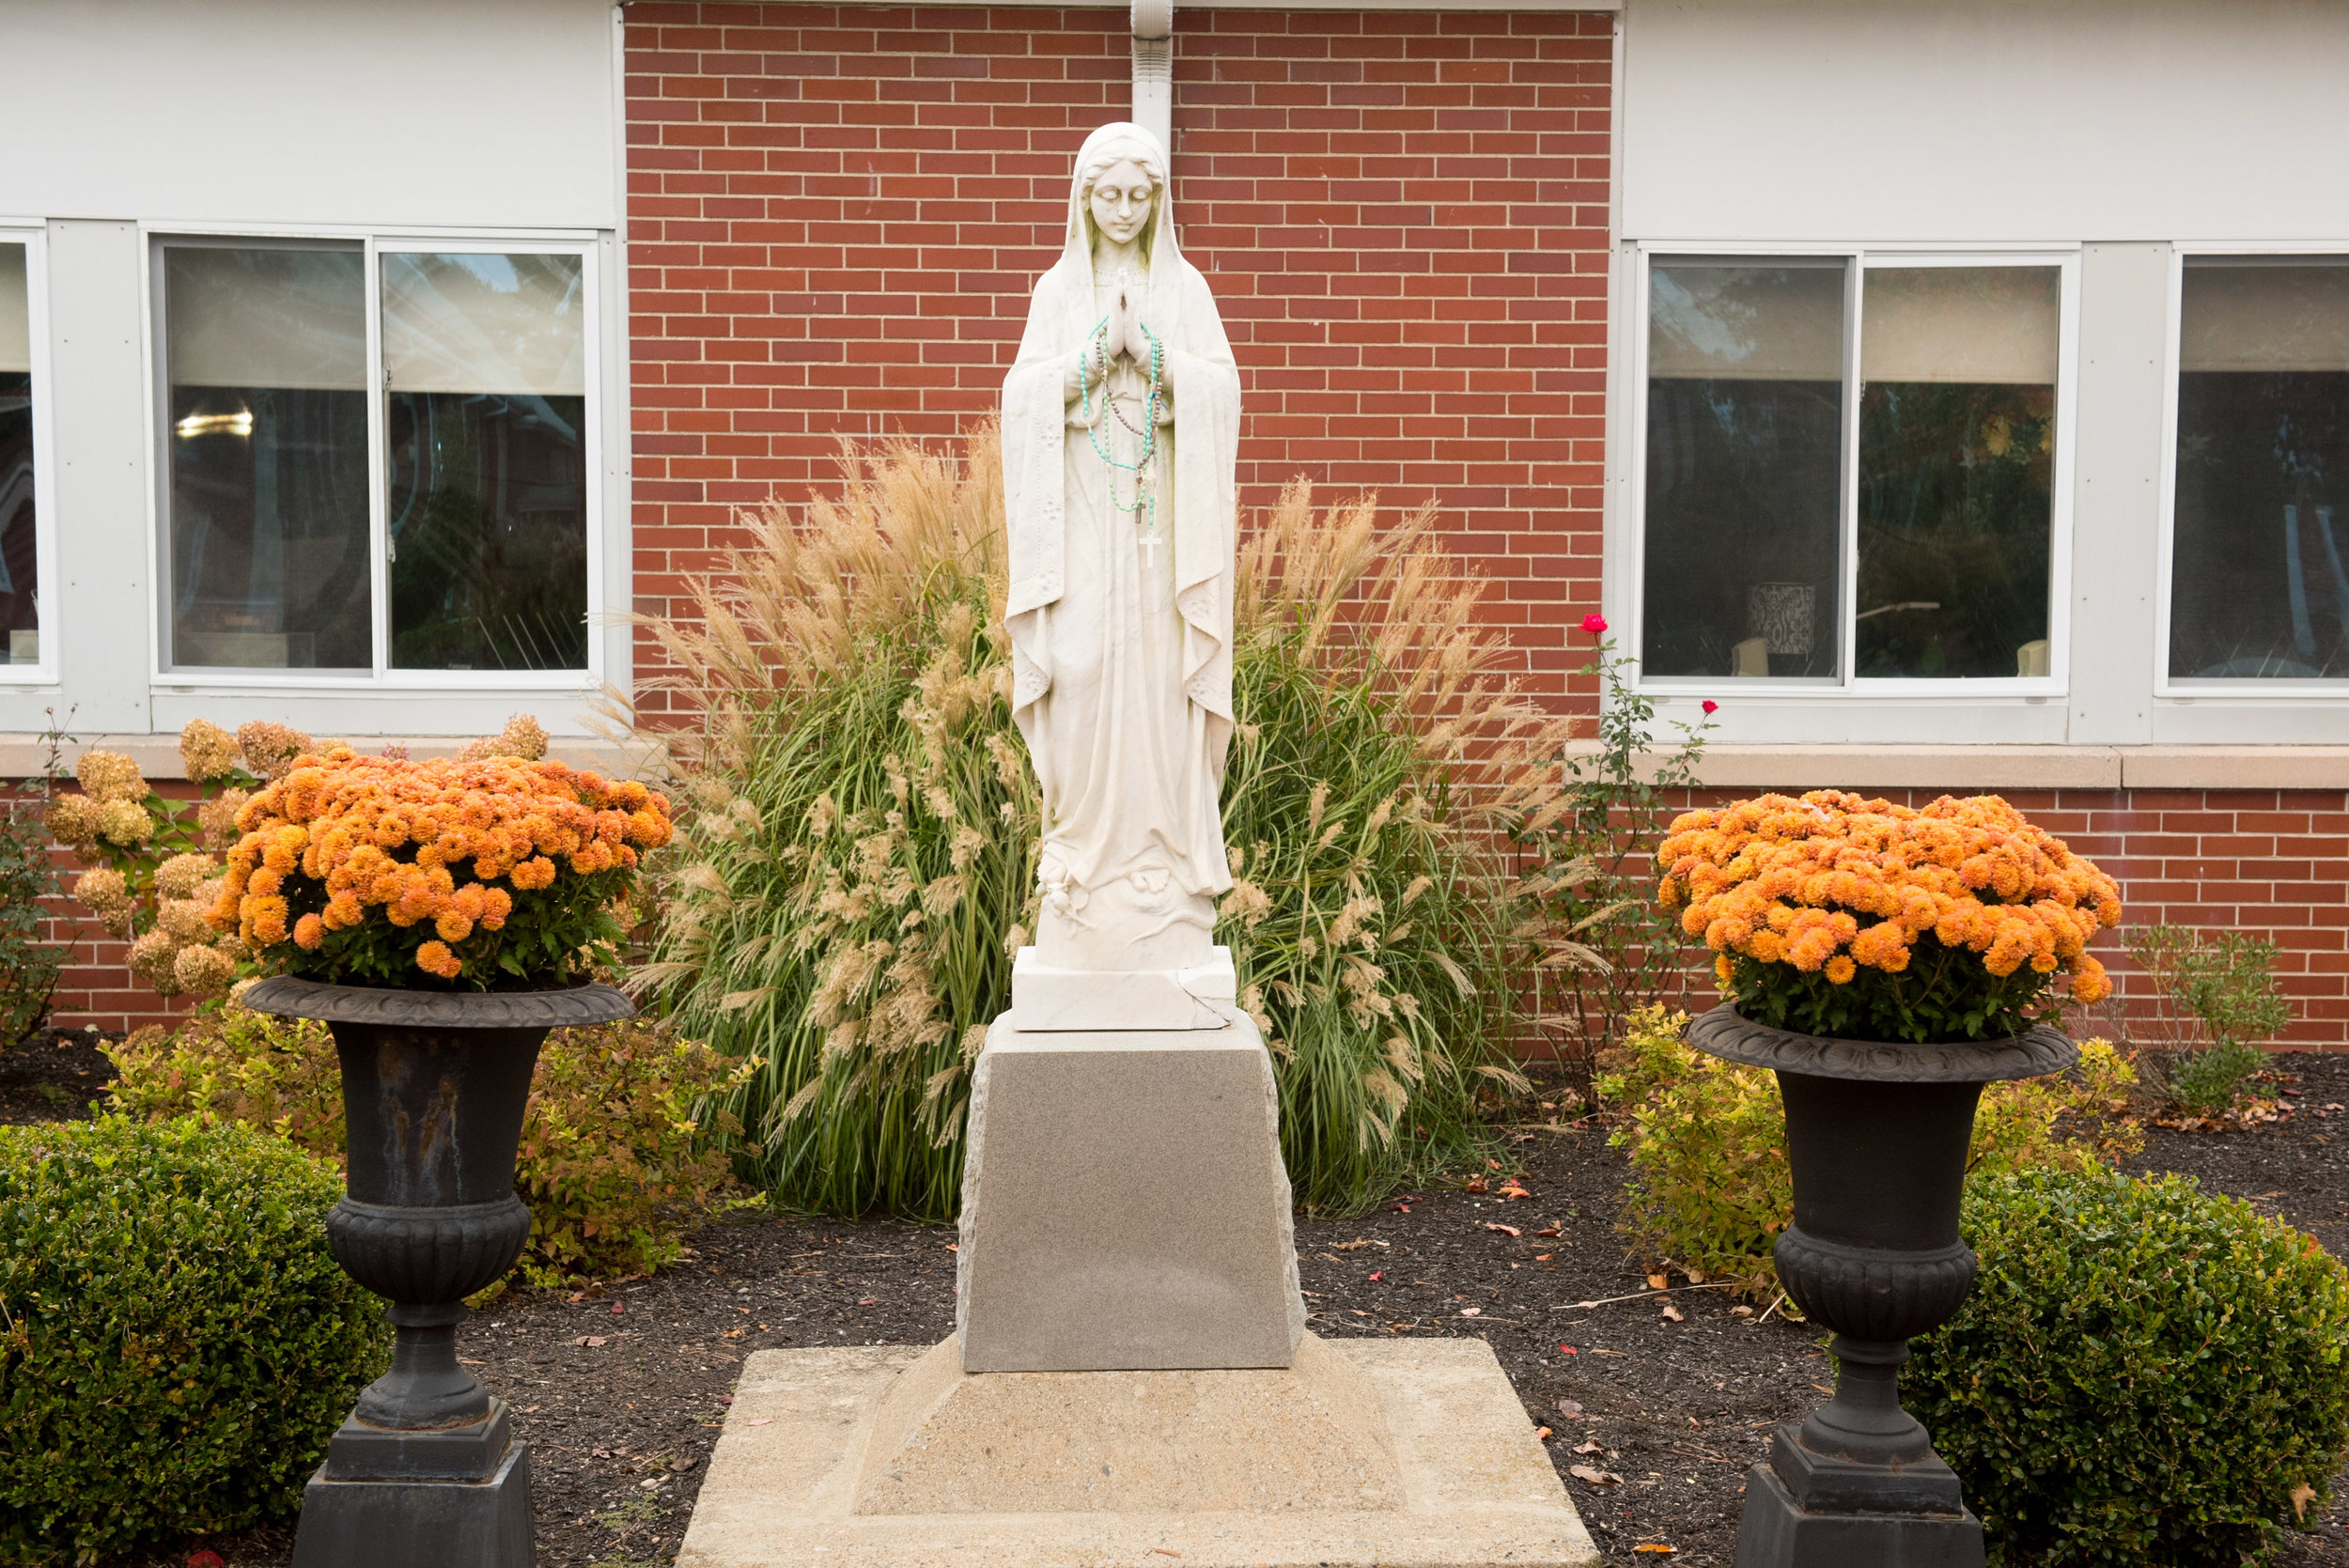 October is the month of Our Lady and the Rosary